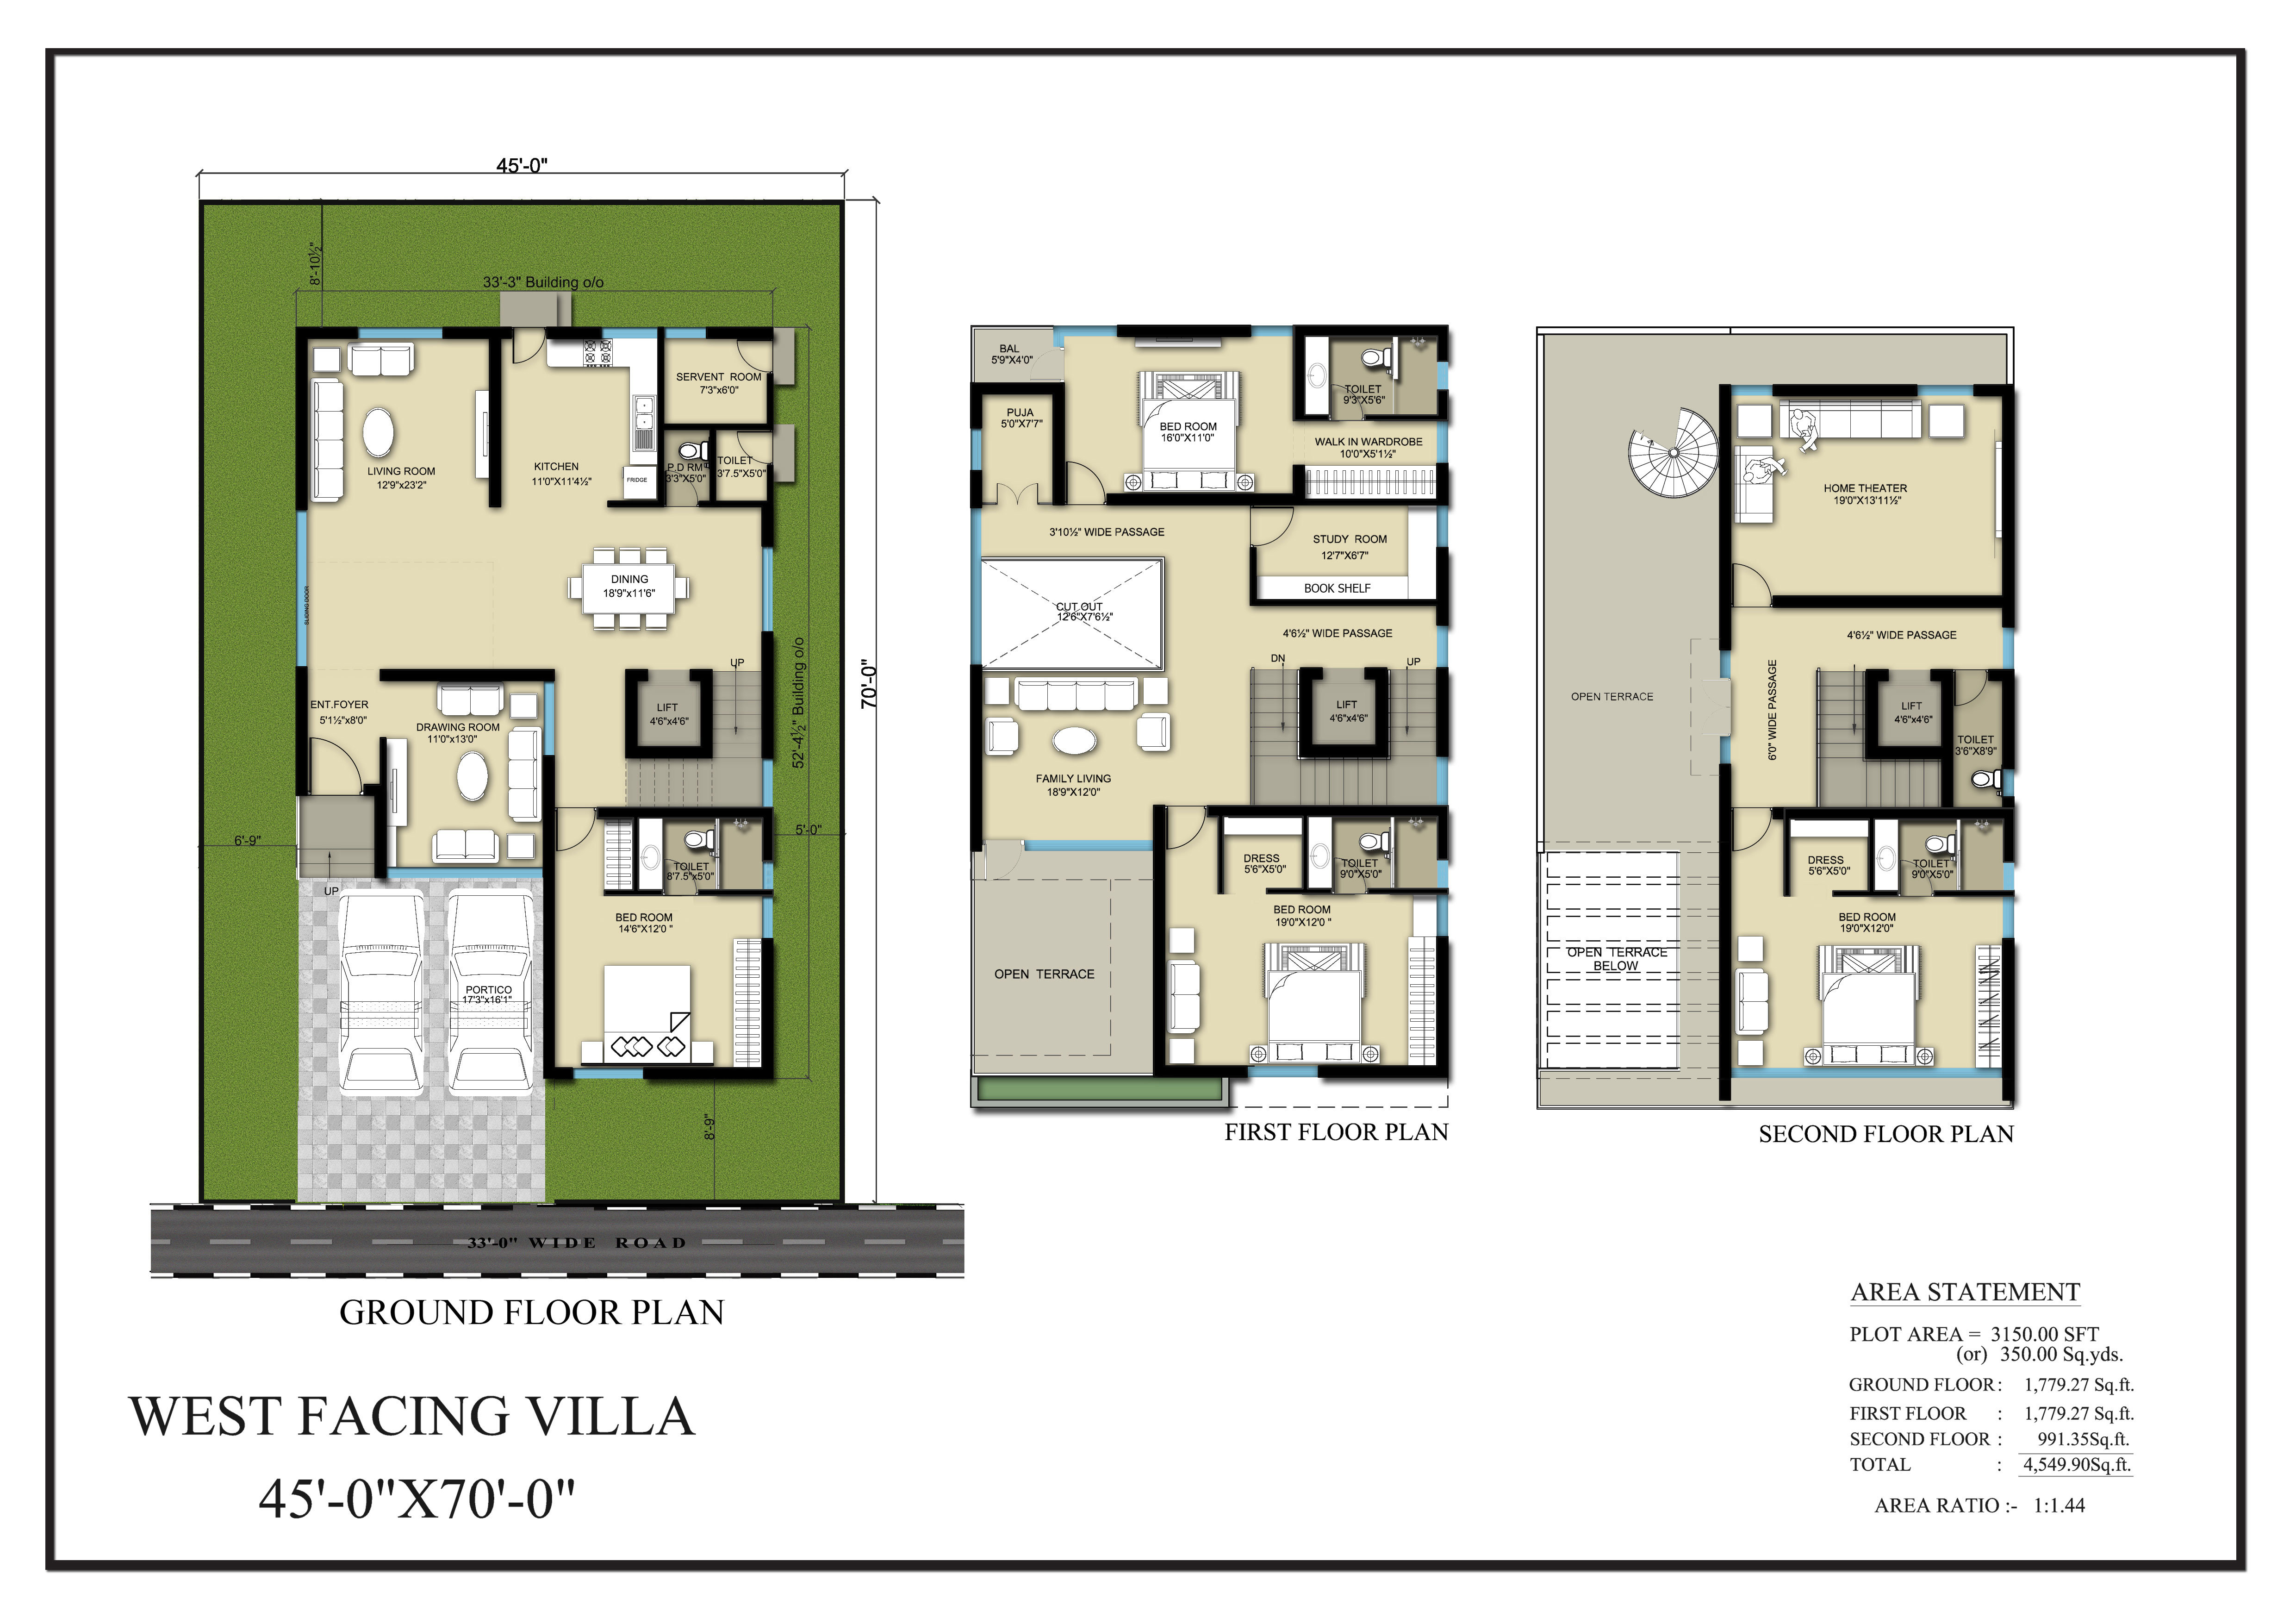 Vasantha City floorplan 4550sqft west facing